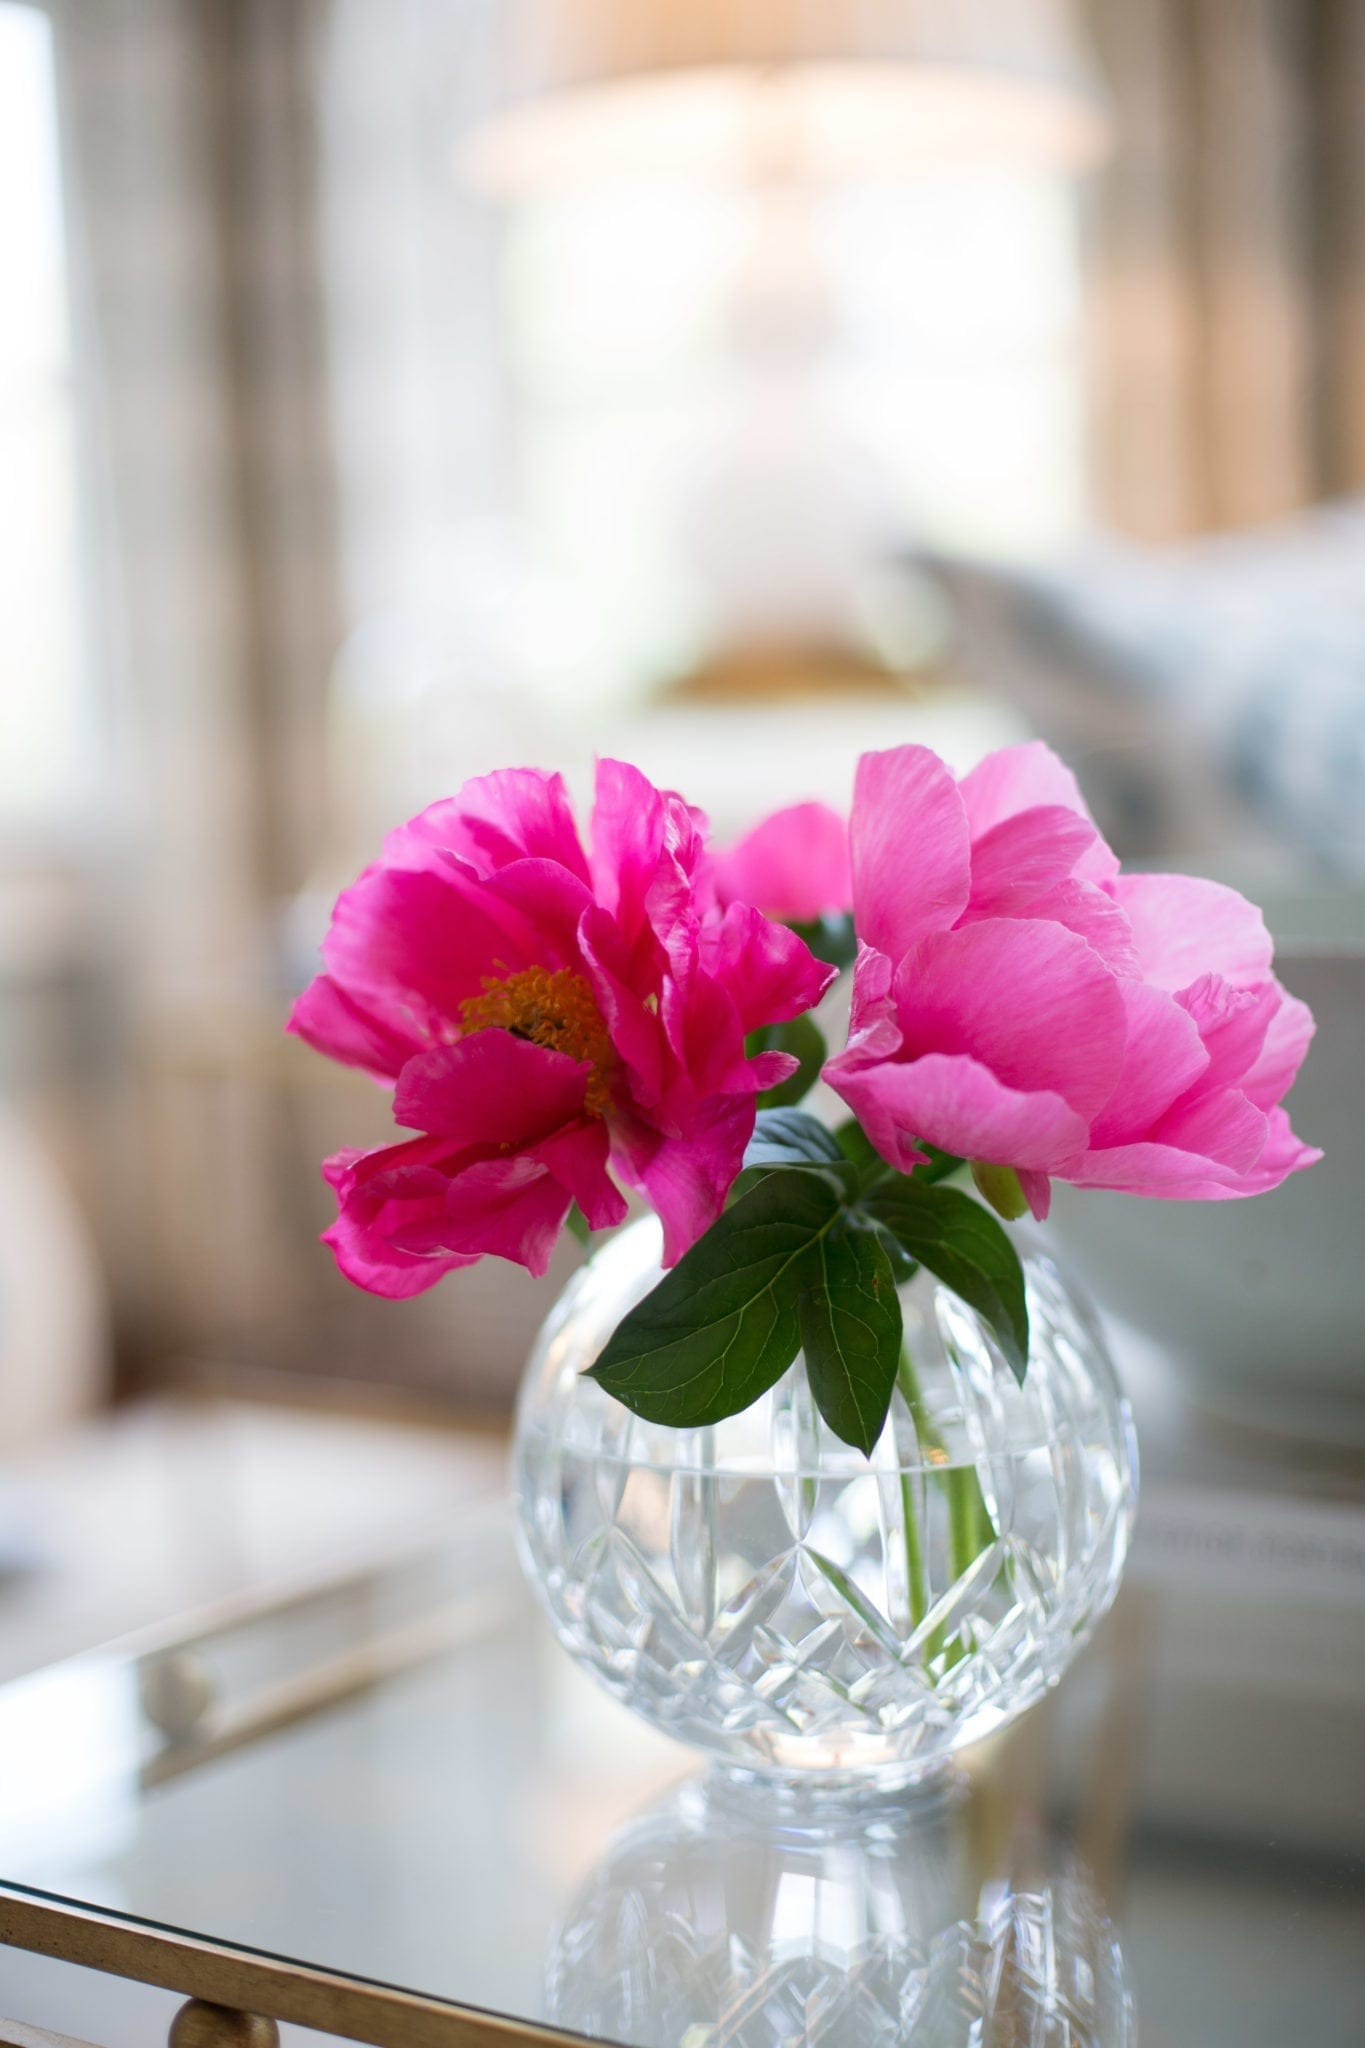 Dark pink peony blooms in flower arrangement.